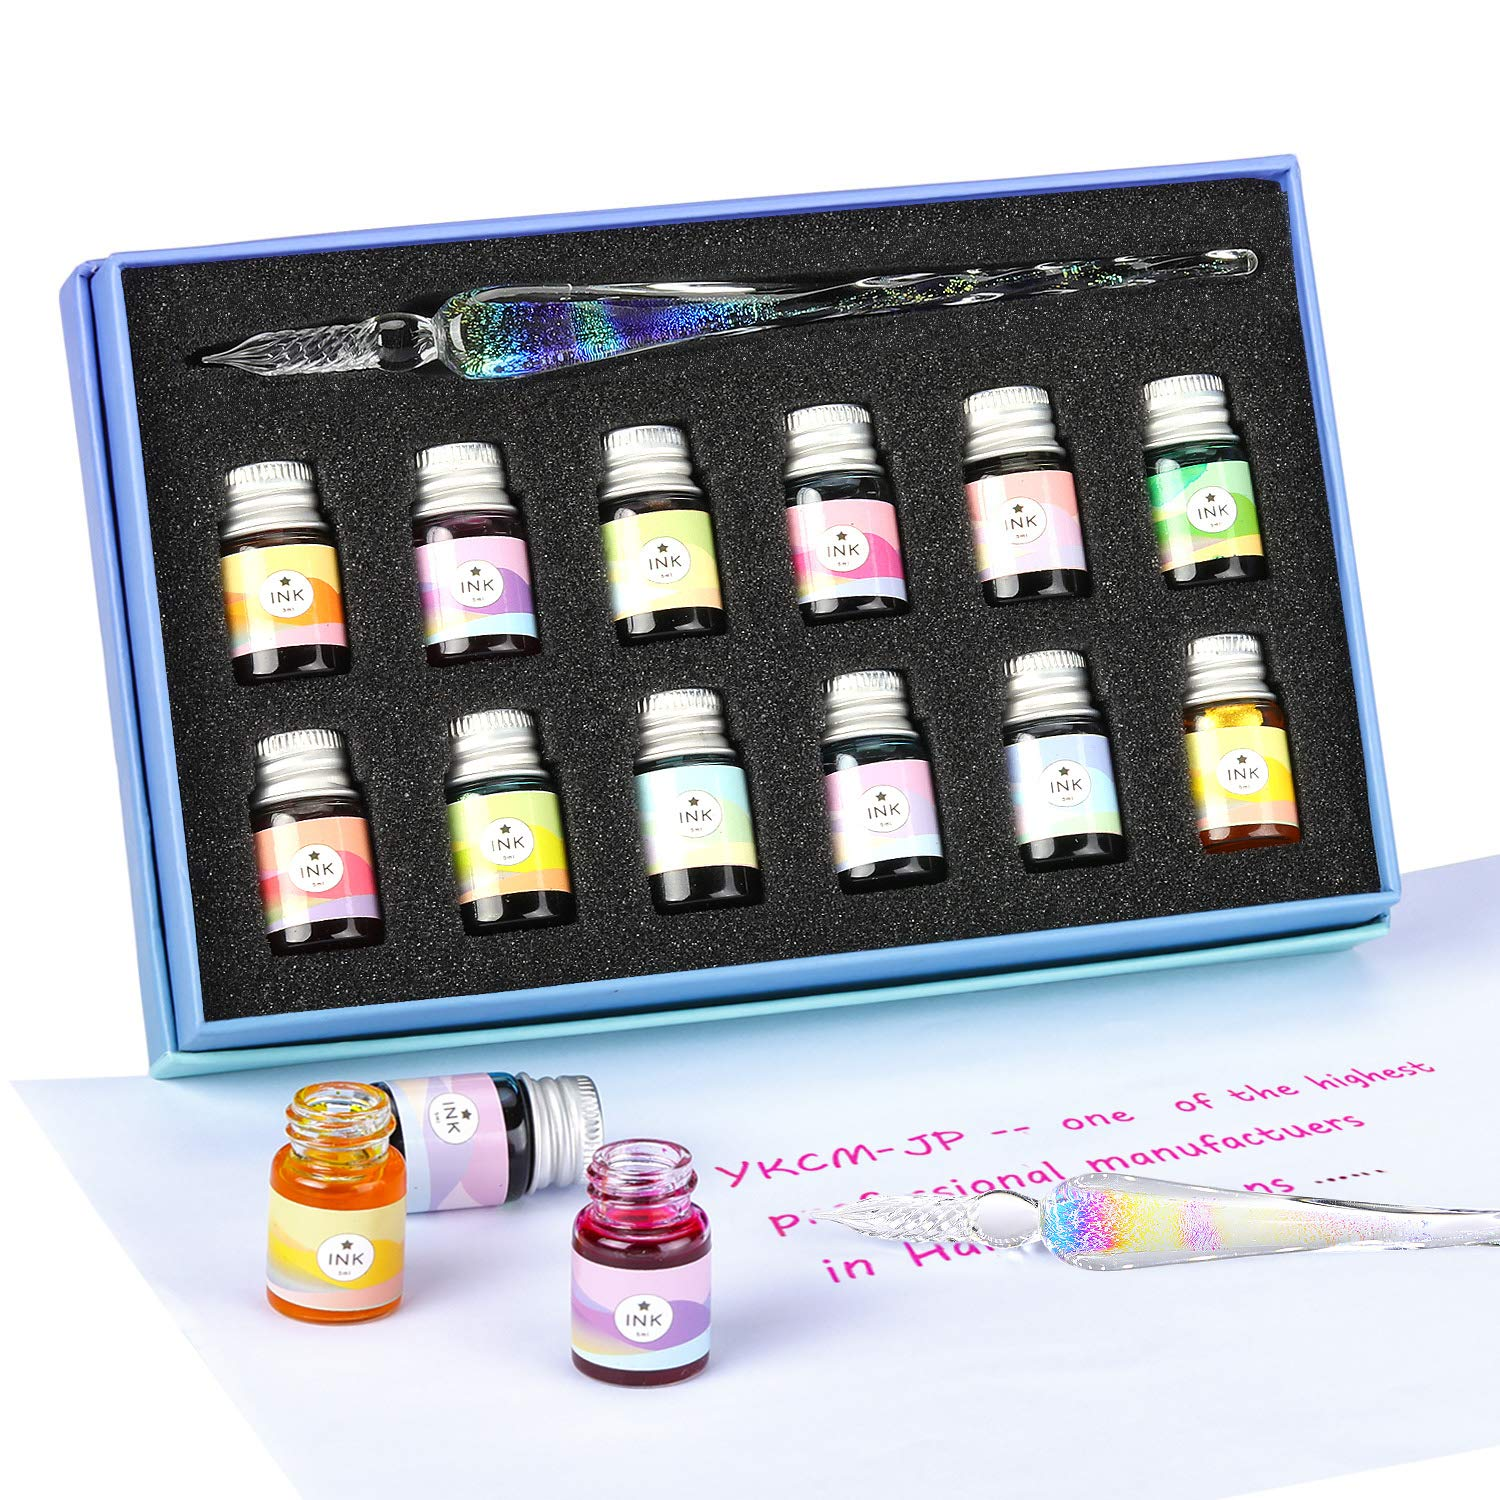 Glass Dipped Pen Ink Set-Crystal Pen with 12 Colorful Inks for Art, Writing, Signatures, Calligraphy, Decoration, Gift